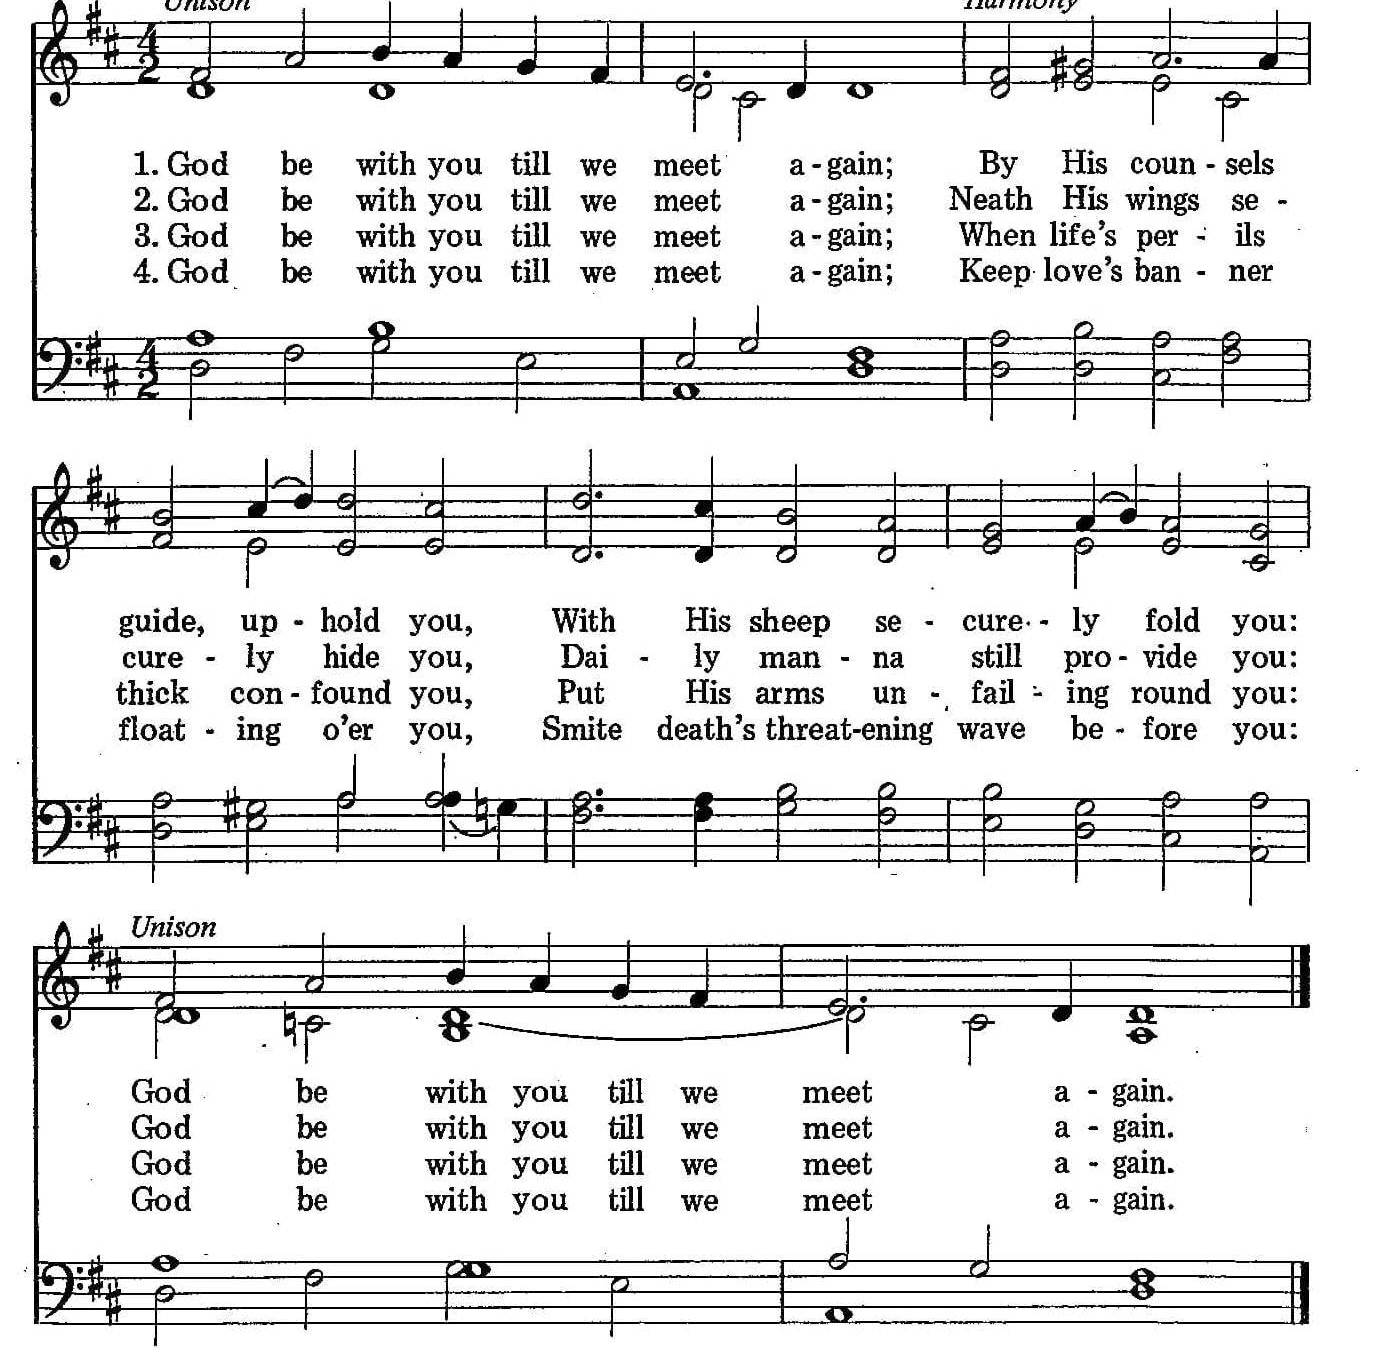 066 – God Be With You sheet music